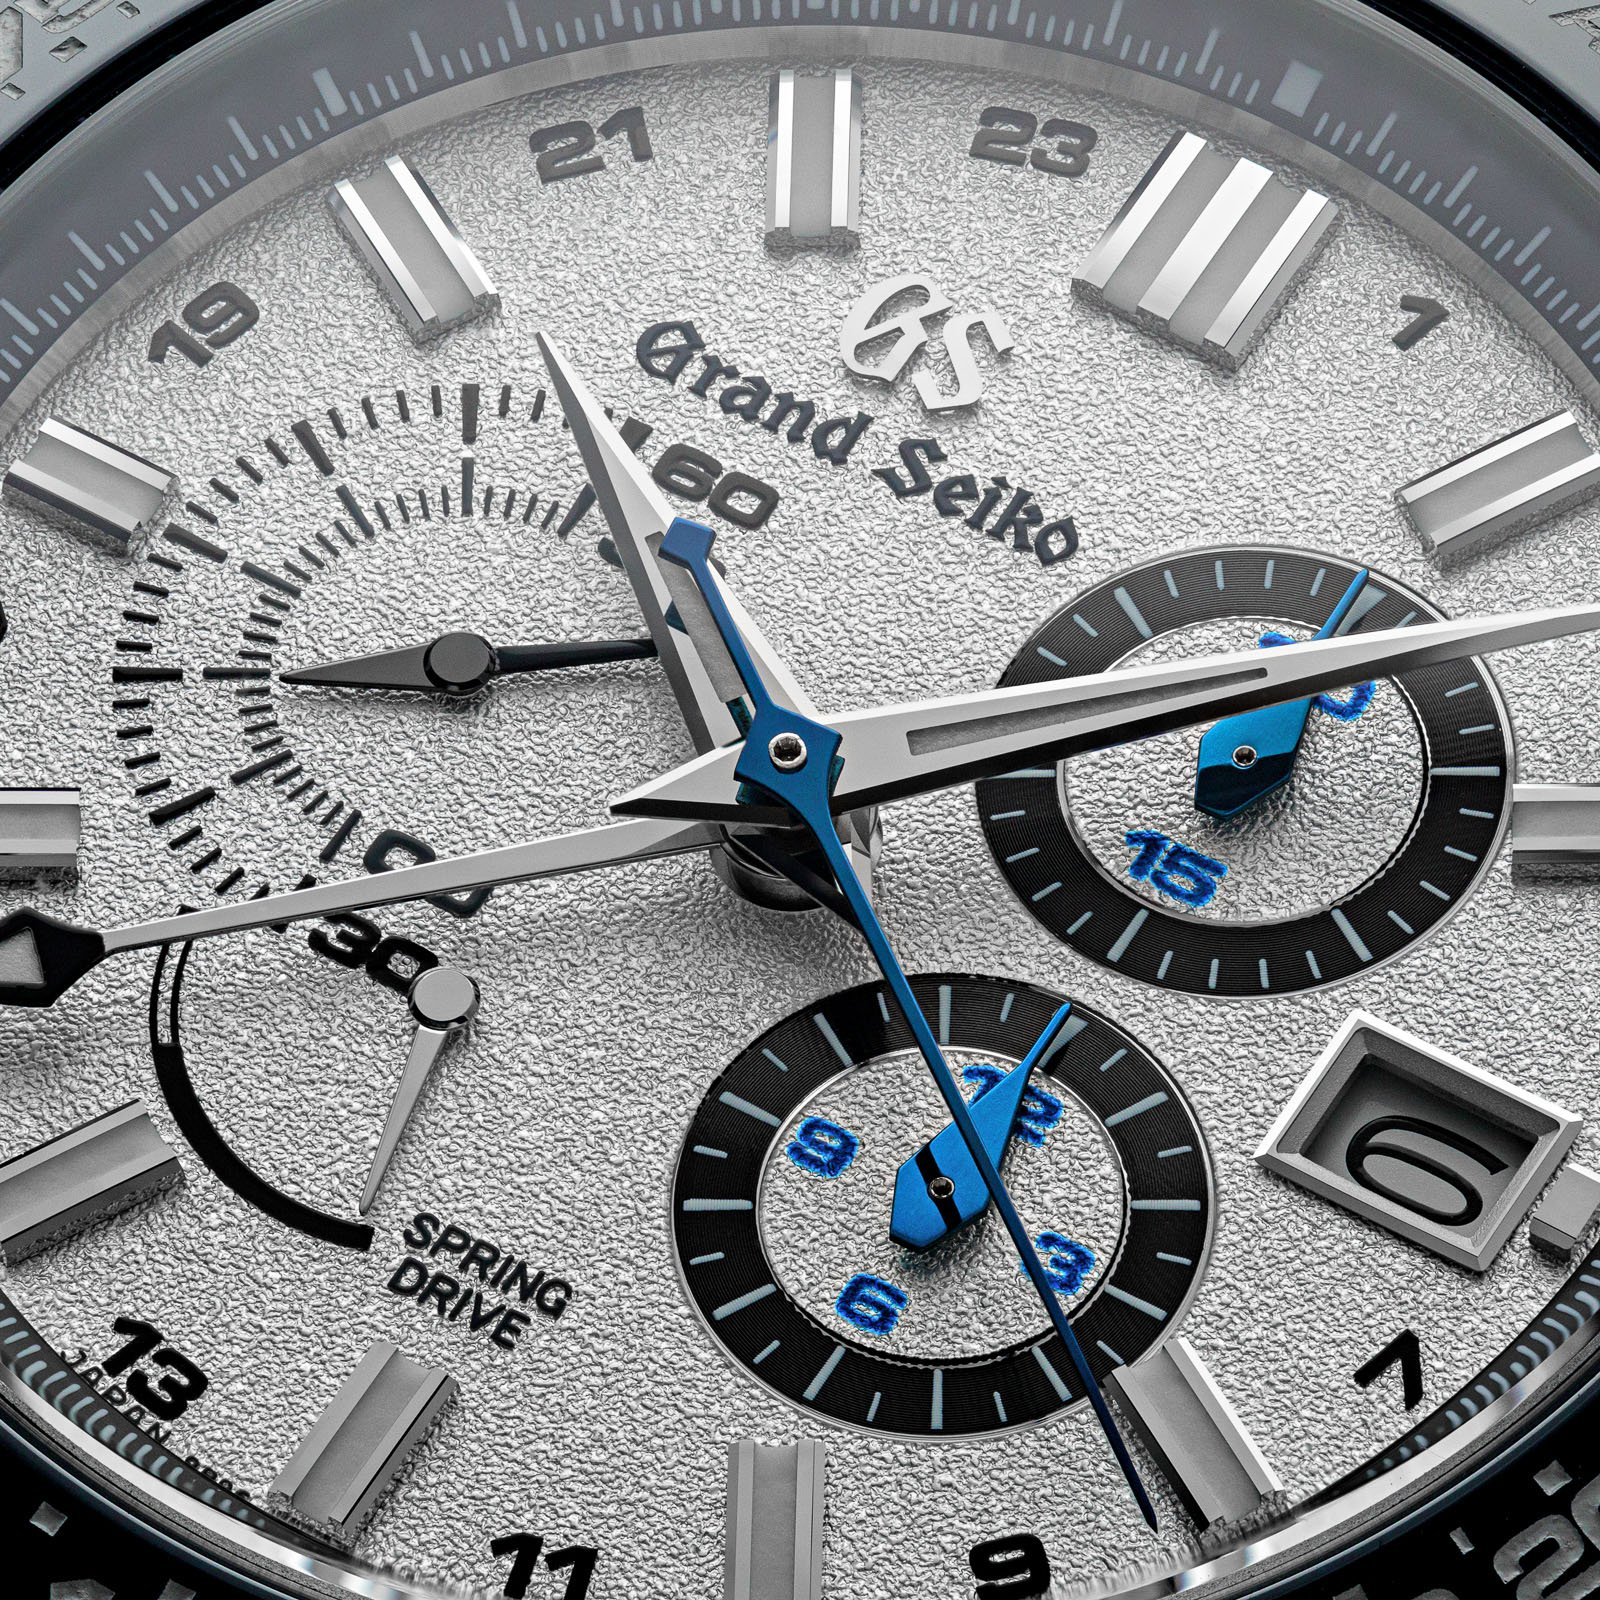 Grand Seiko Chronograph SBGC229 - macro of white dial wristwatch with blue accents.